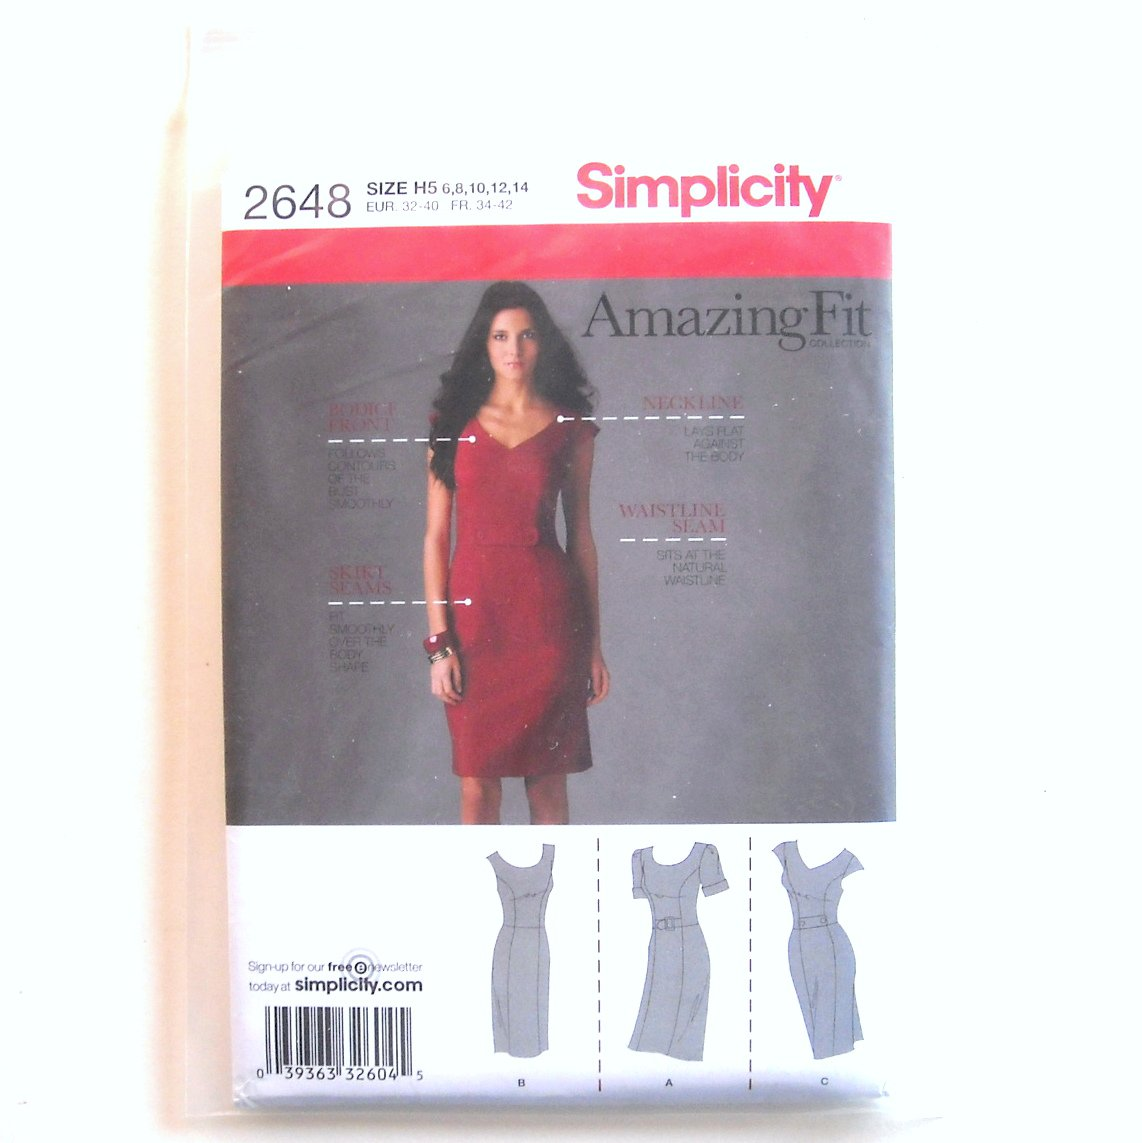 Misses Petite Dress Amazing Fit Size 6 - 14 Simplicity Sewing Pattern 2648